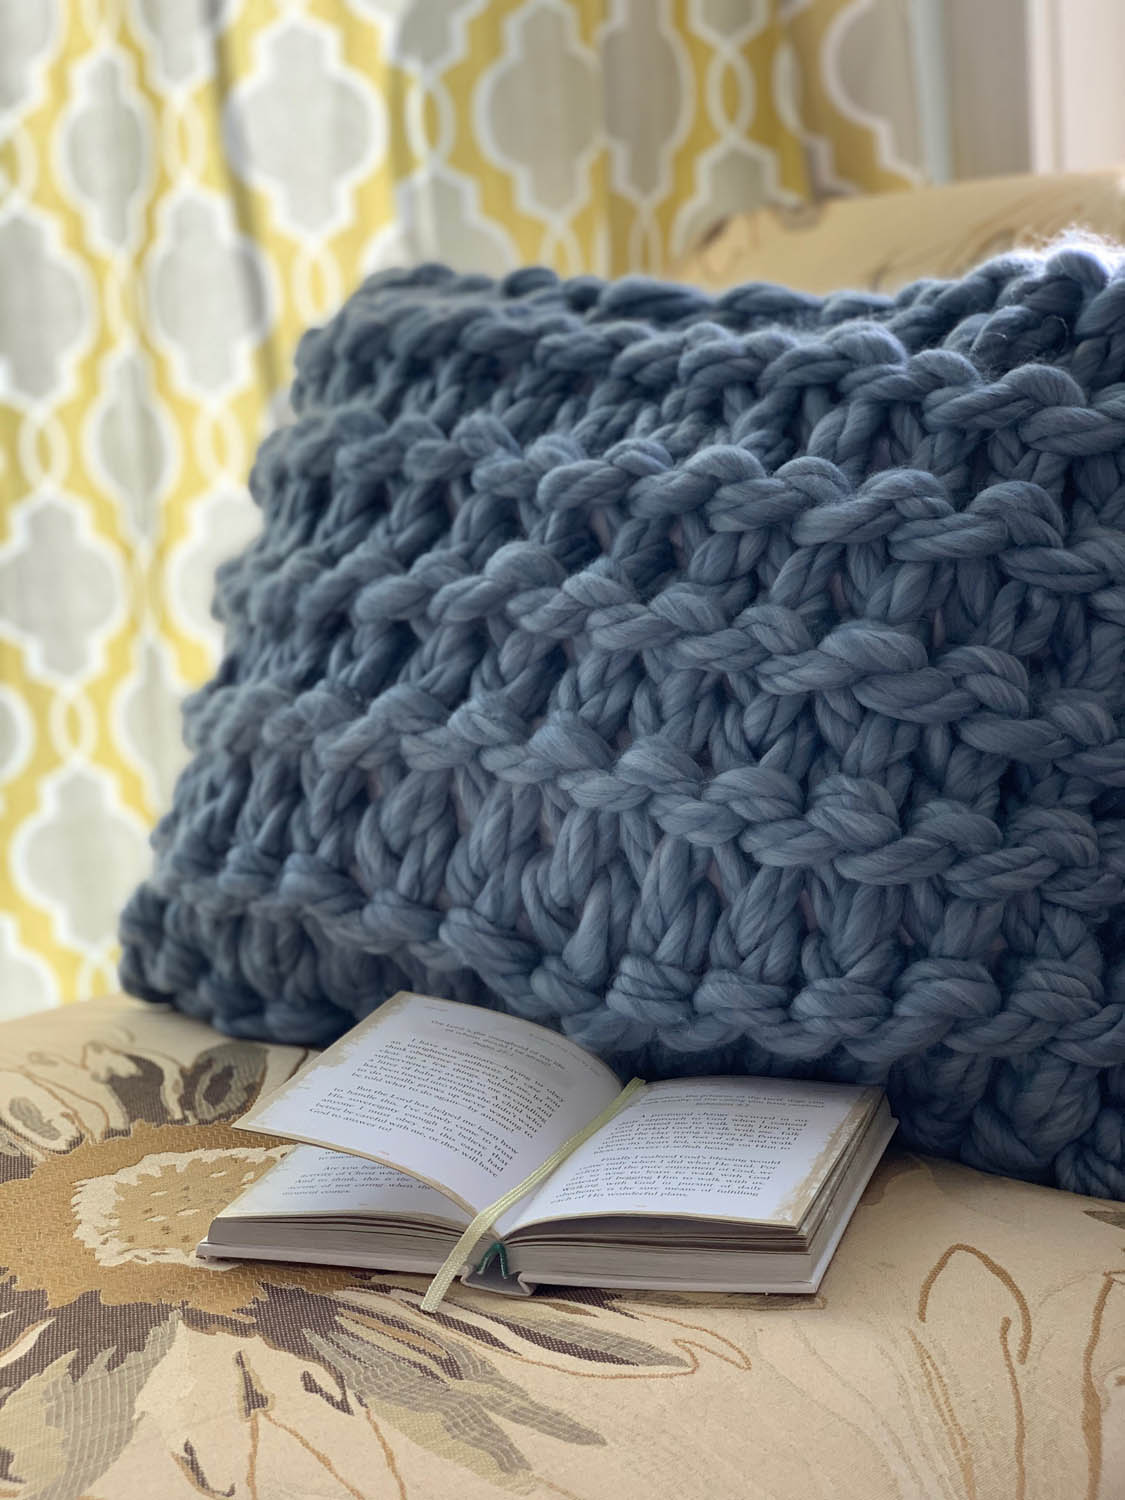 Hand knit pillow in garter stitch using jumbo yarn on cushion with book